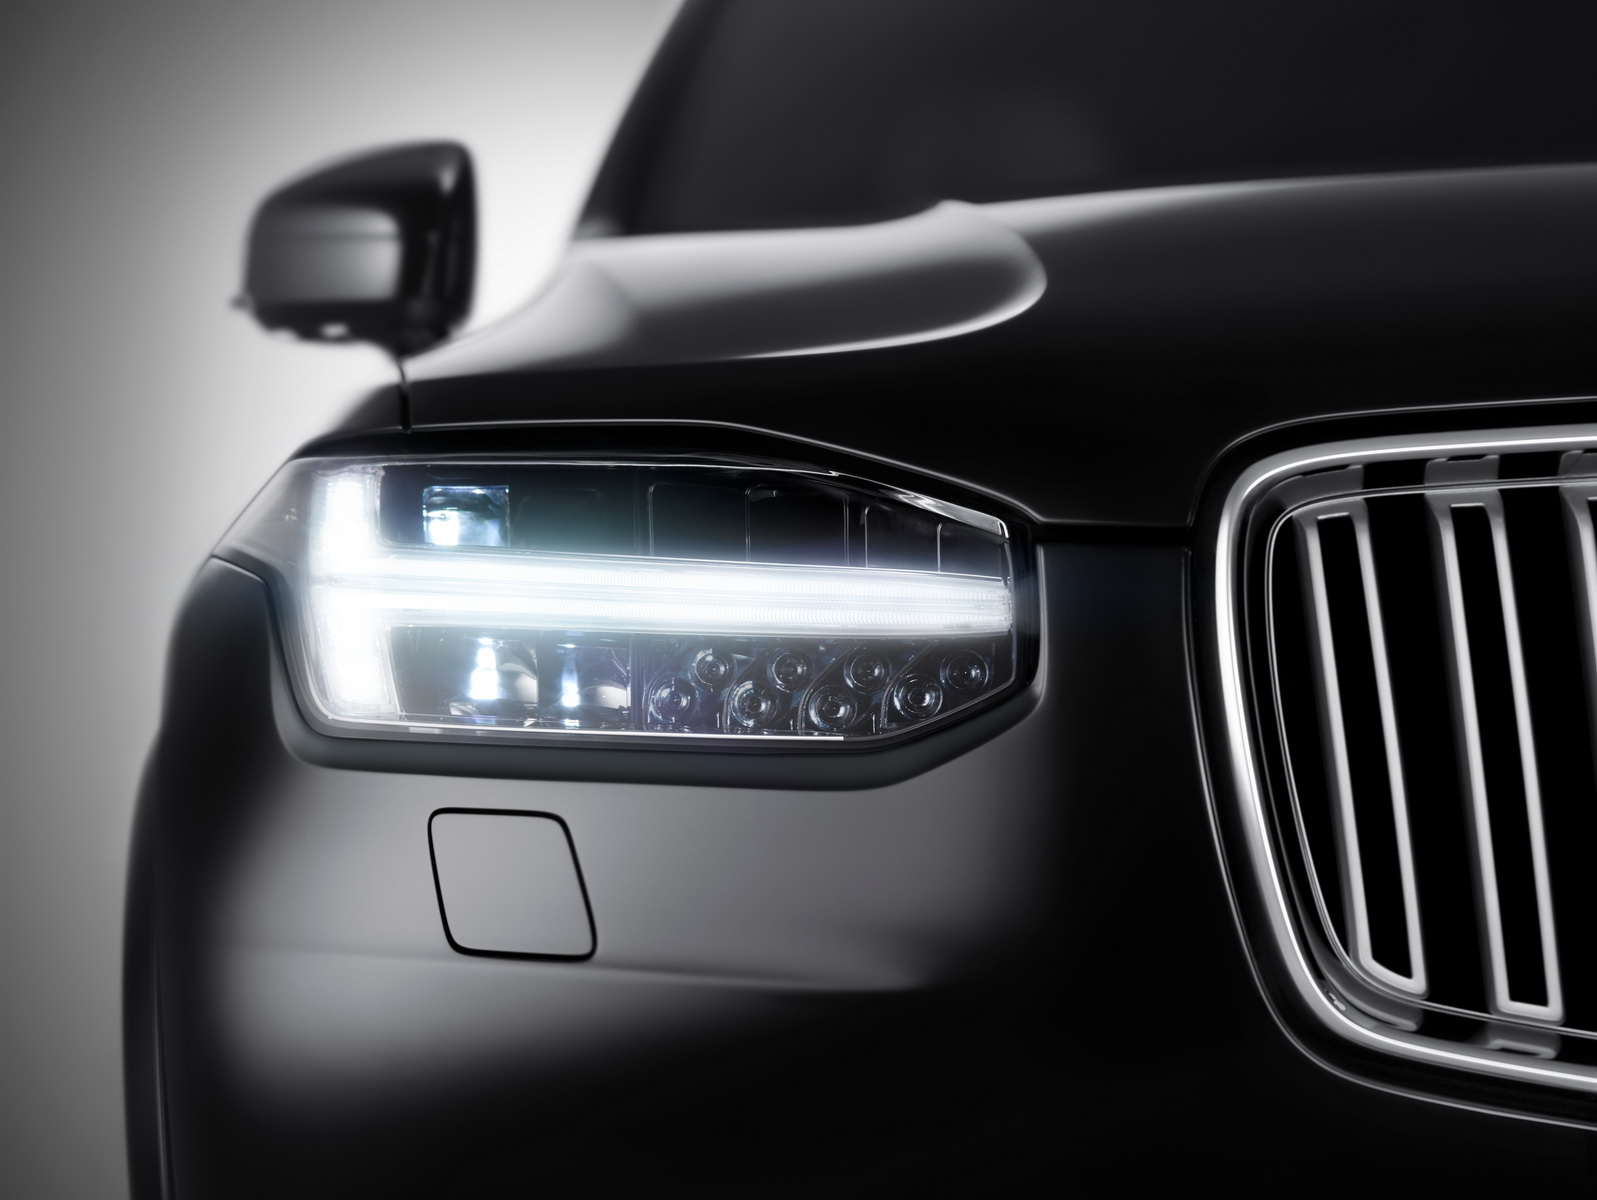 Front view of the all-new XC90, including the distinctive new T-shaped running lights.